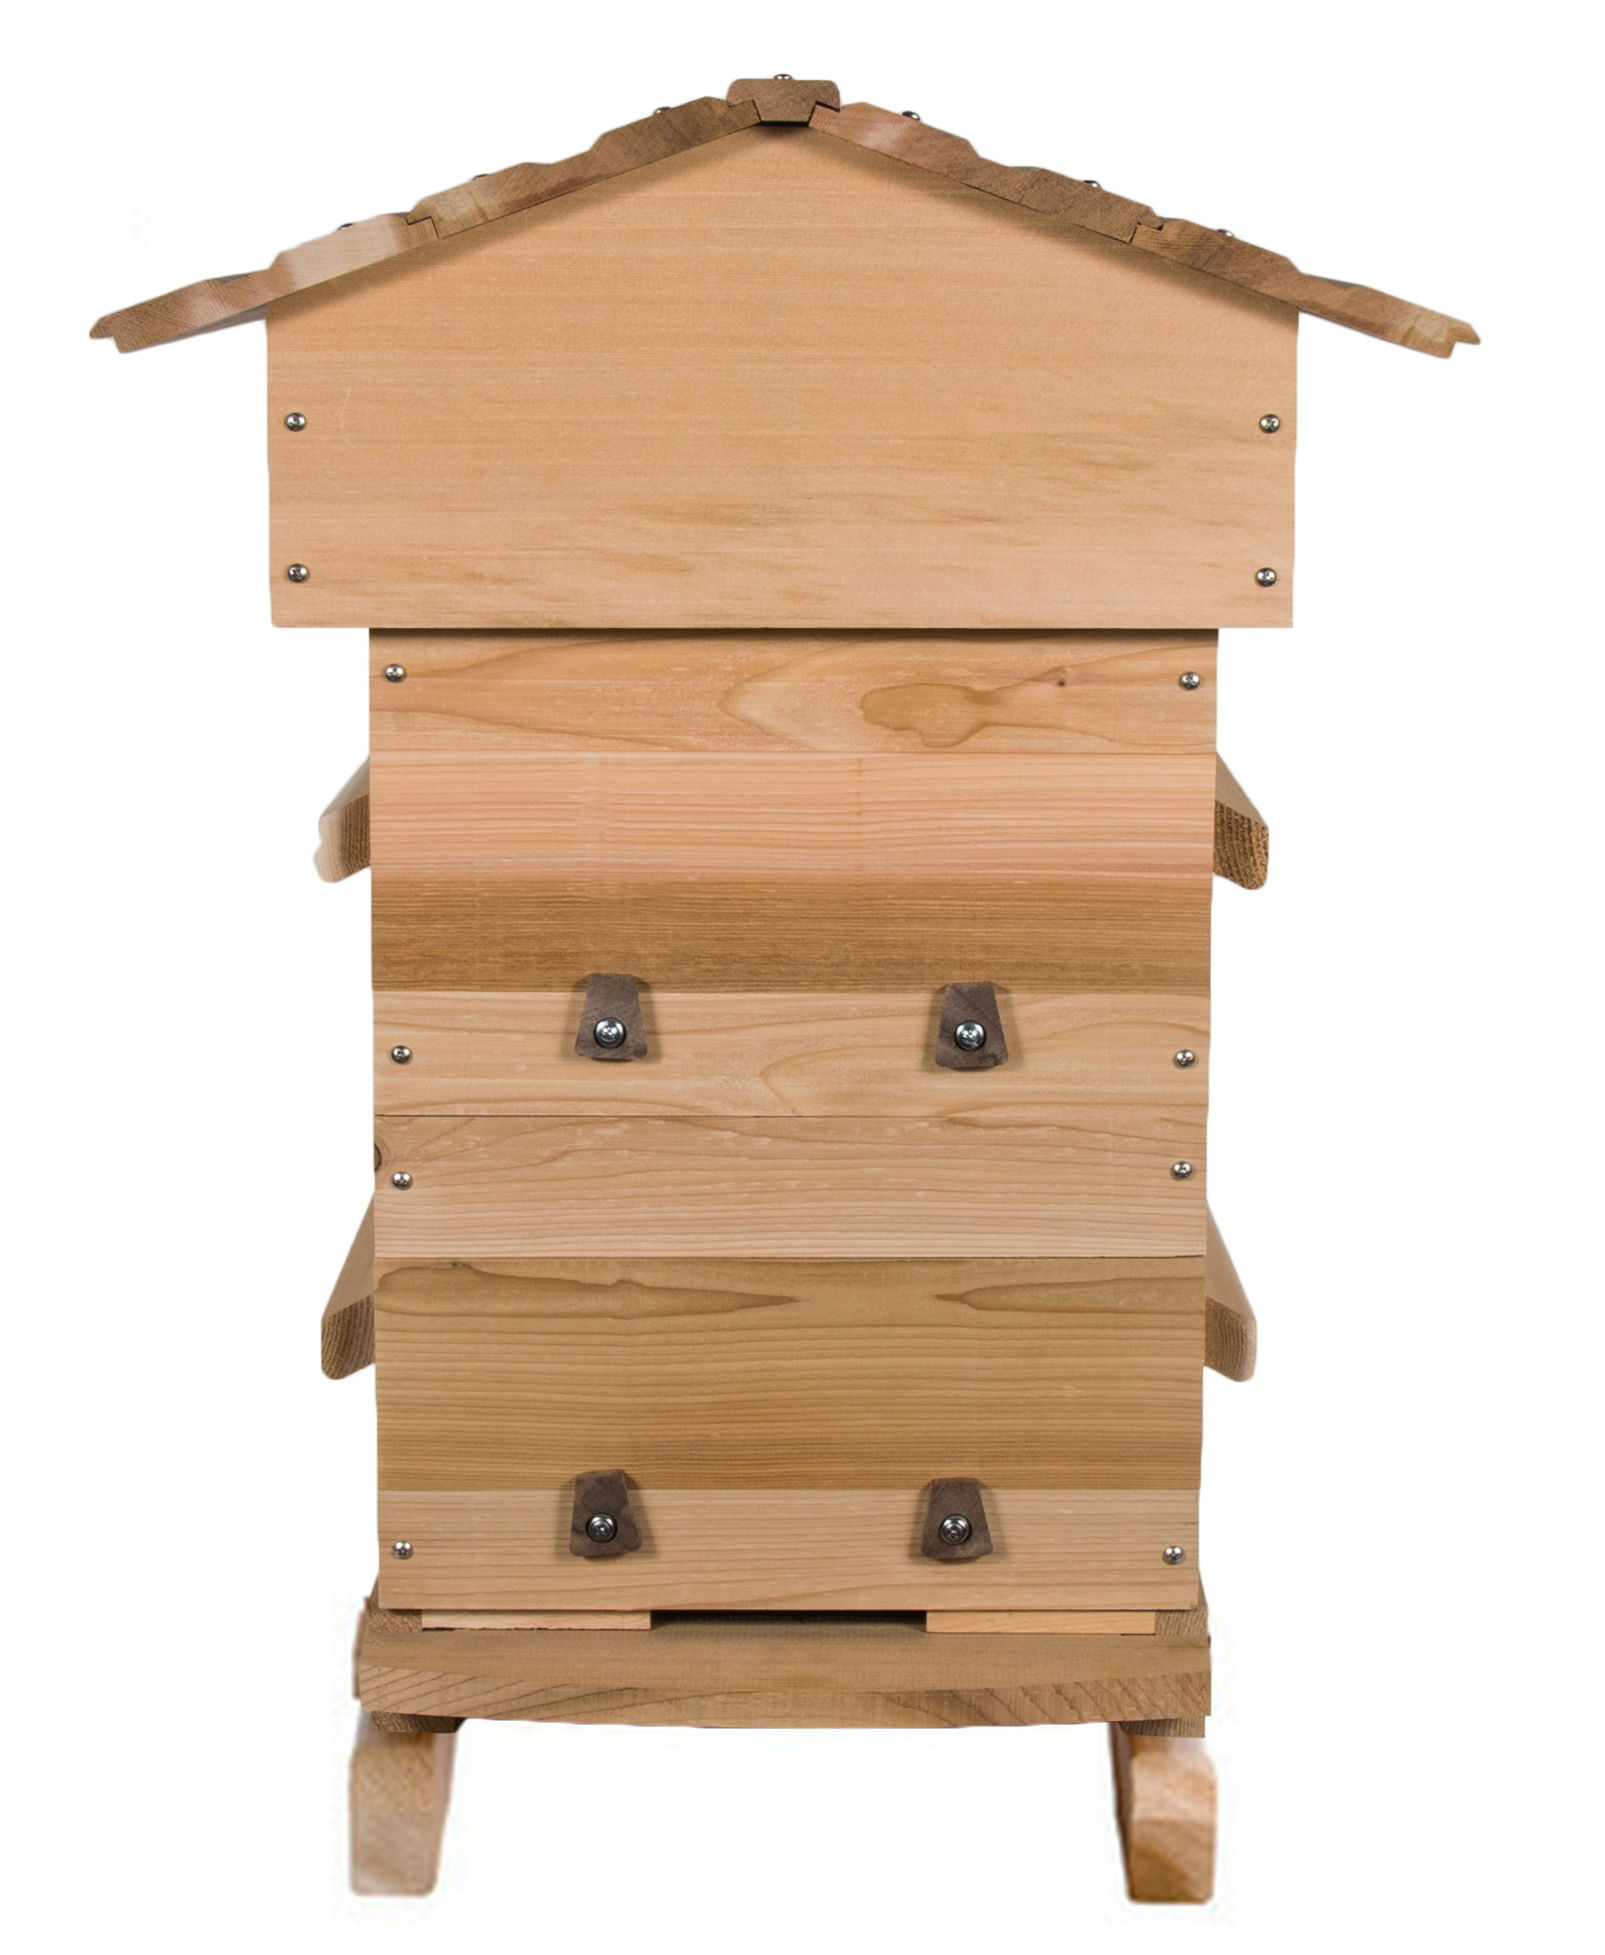 Warre Hives Are Ideally Suited For The Beekeeper Looking For A Low Cost,  Low Maintenance Hive Design. With A Warre Hive, There Is No Need To  Frequently ...